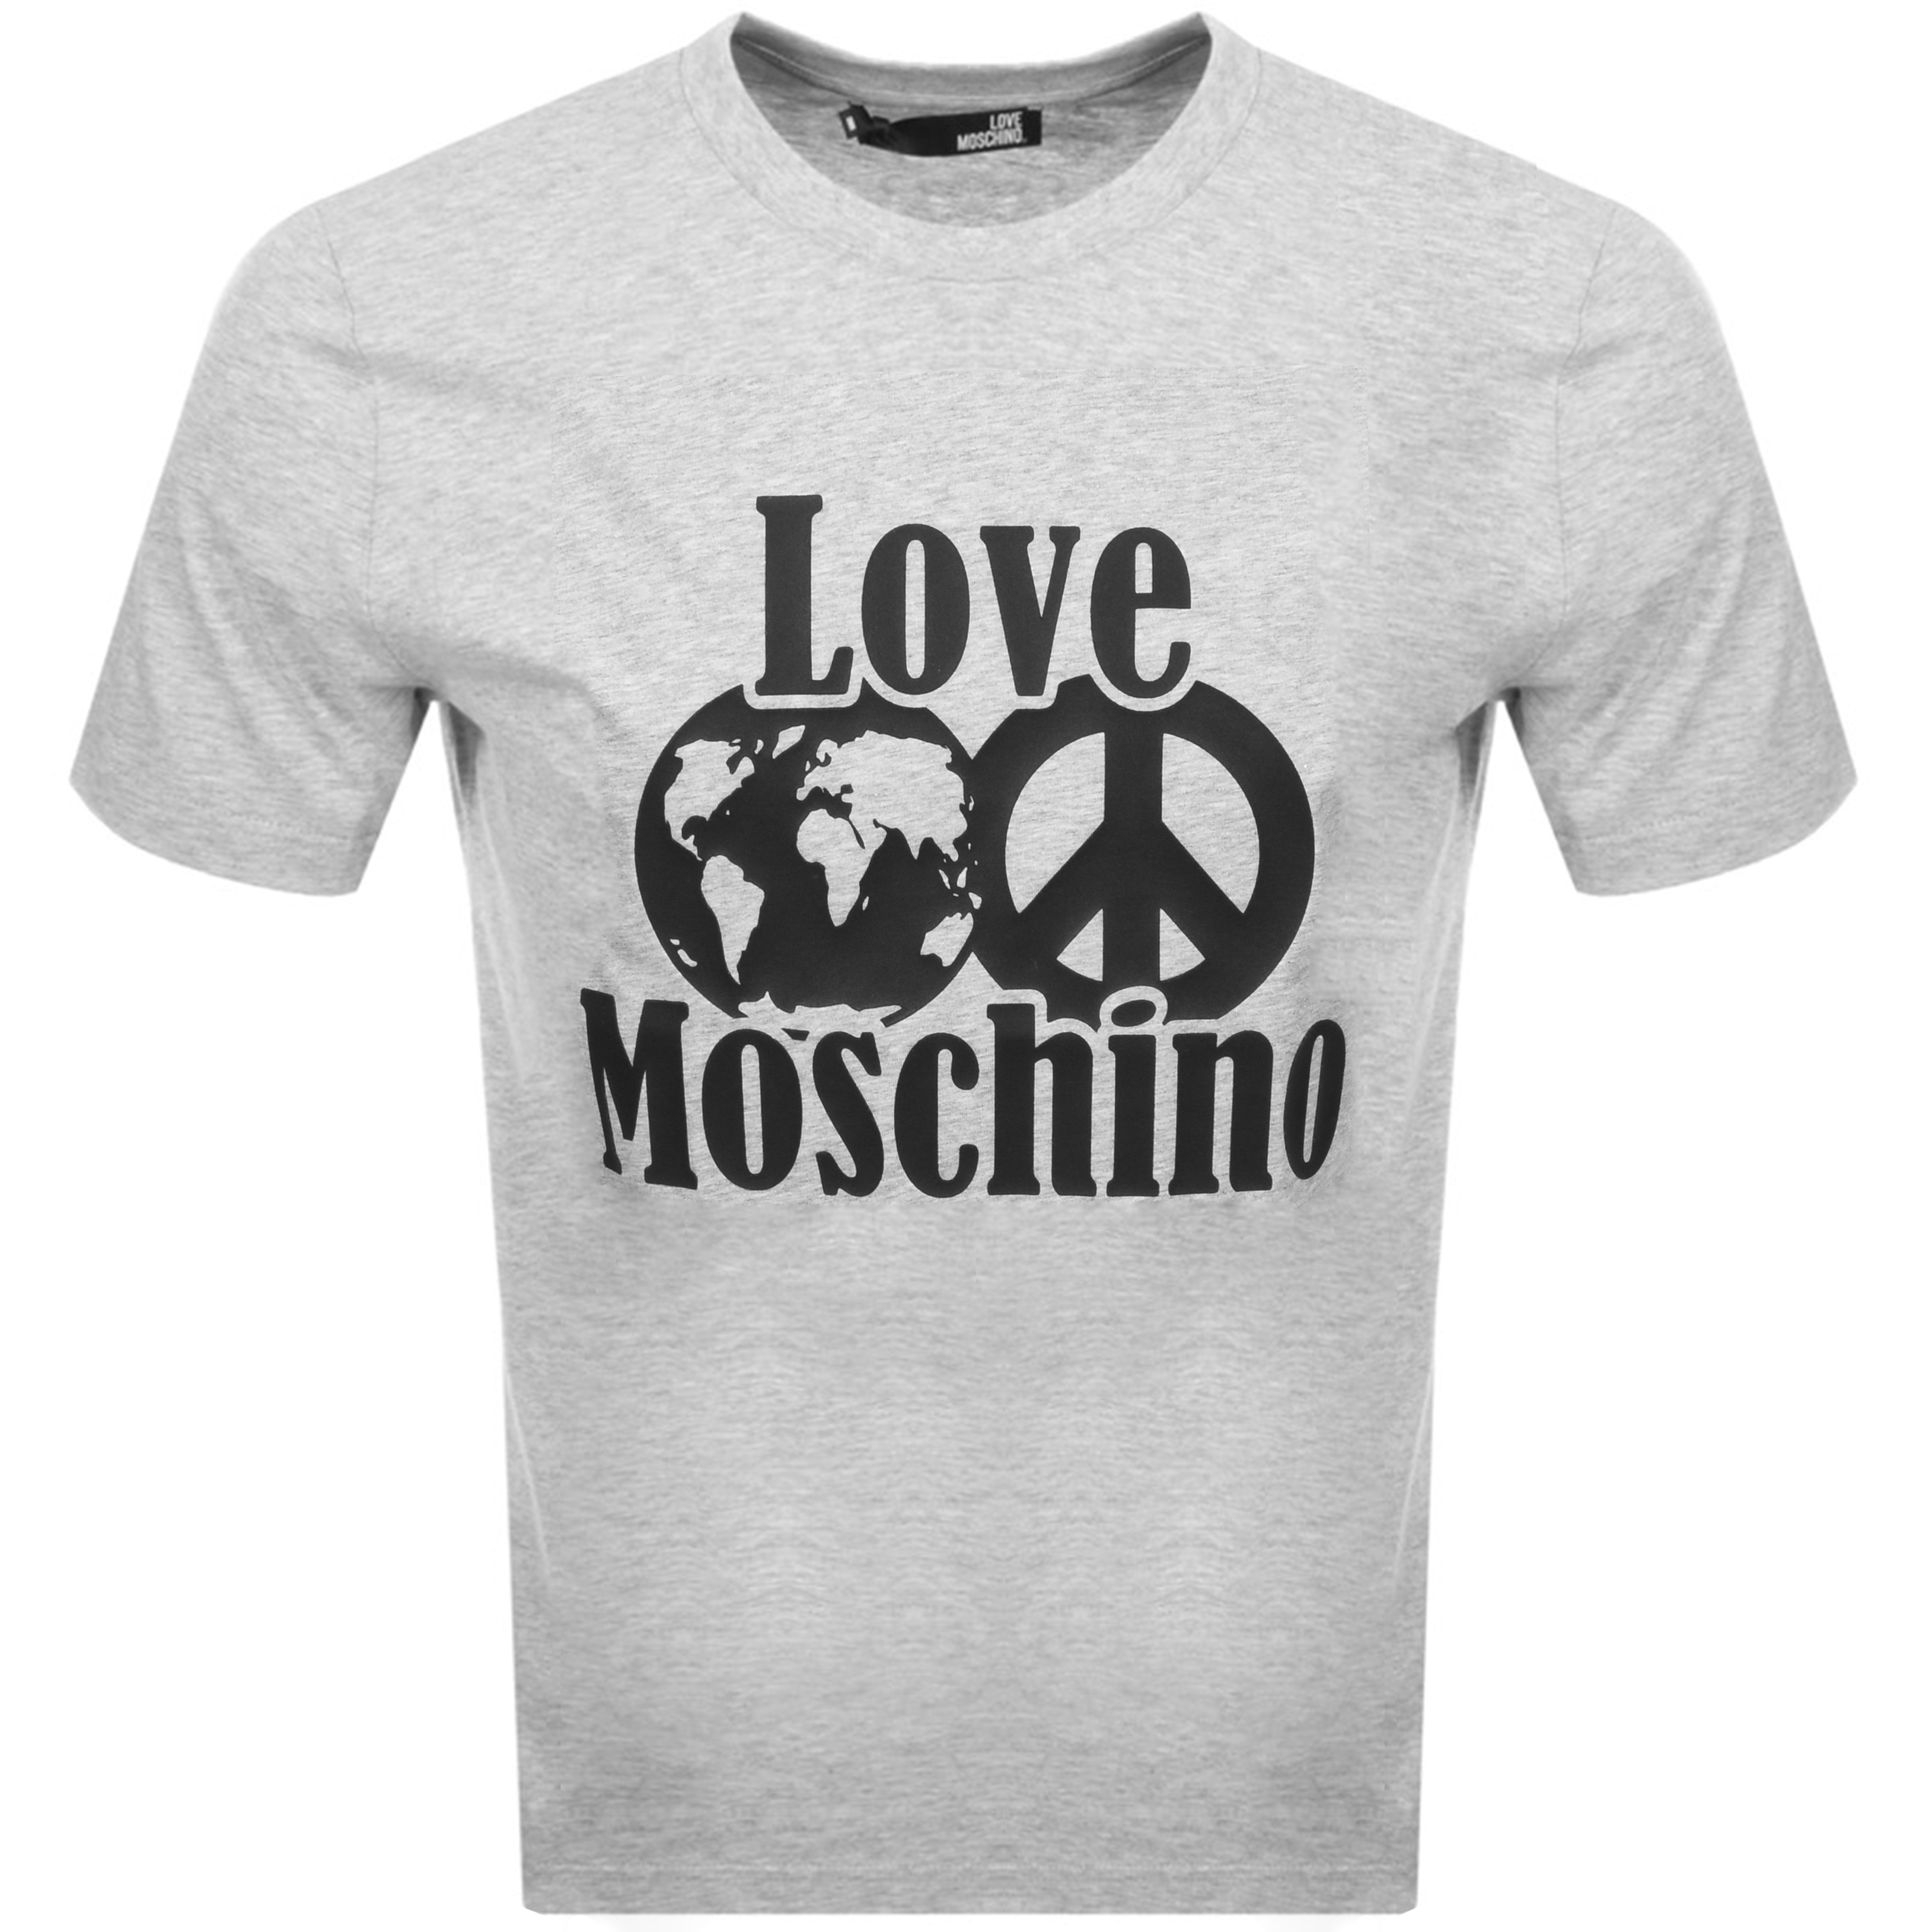 789d7d1410d Moschino Mens T shirts & Polo Shirts | Mainline Menswear